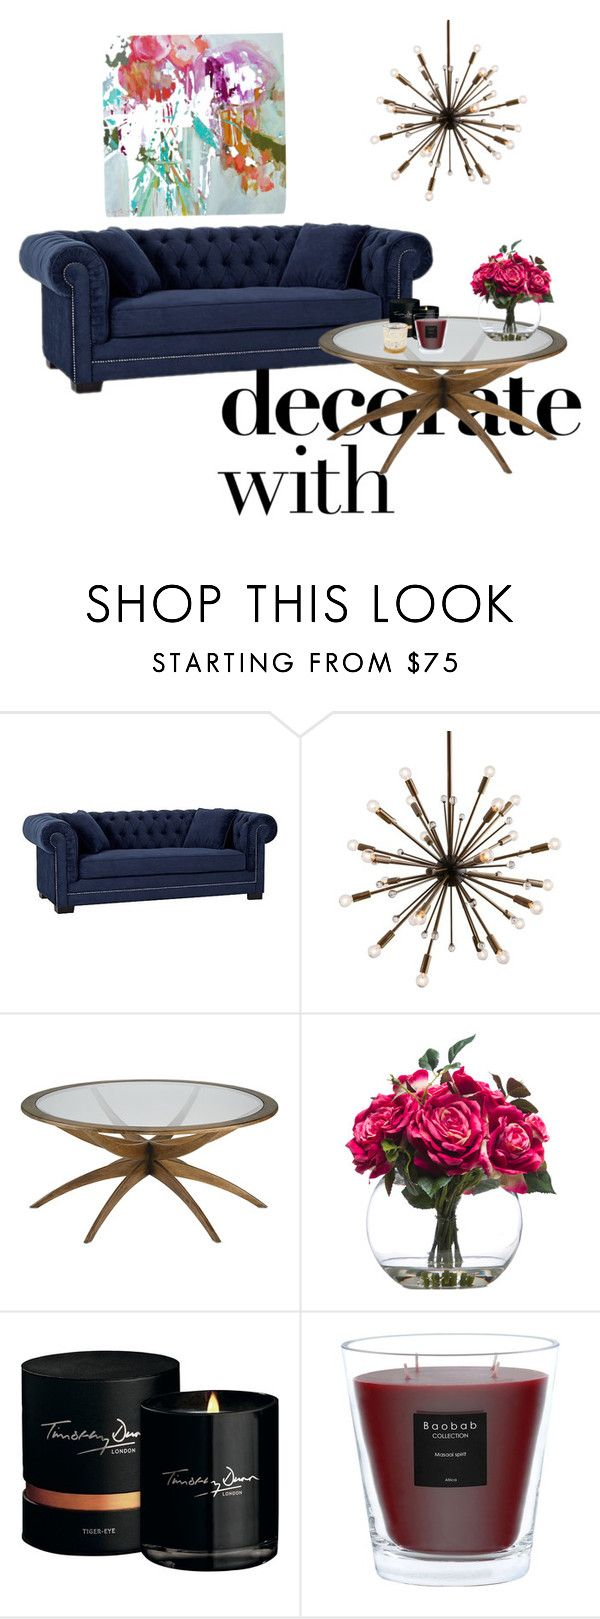 """Blue sofa and candles"" by artdecorationcrafting on Polyvore featuring interior, interiors, interior design, home, home decor, interior decorating, Arteriors, Lux-Art Silks, Timothy Dunn and Baobab Collection"